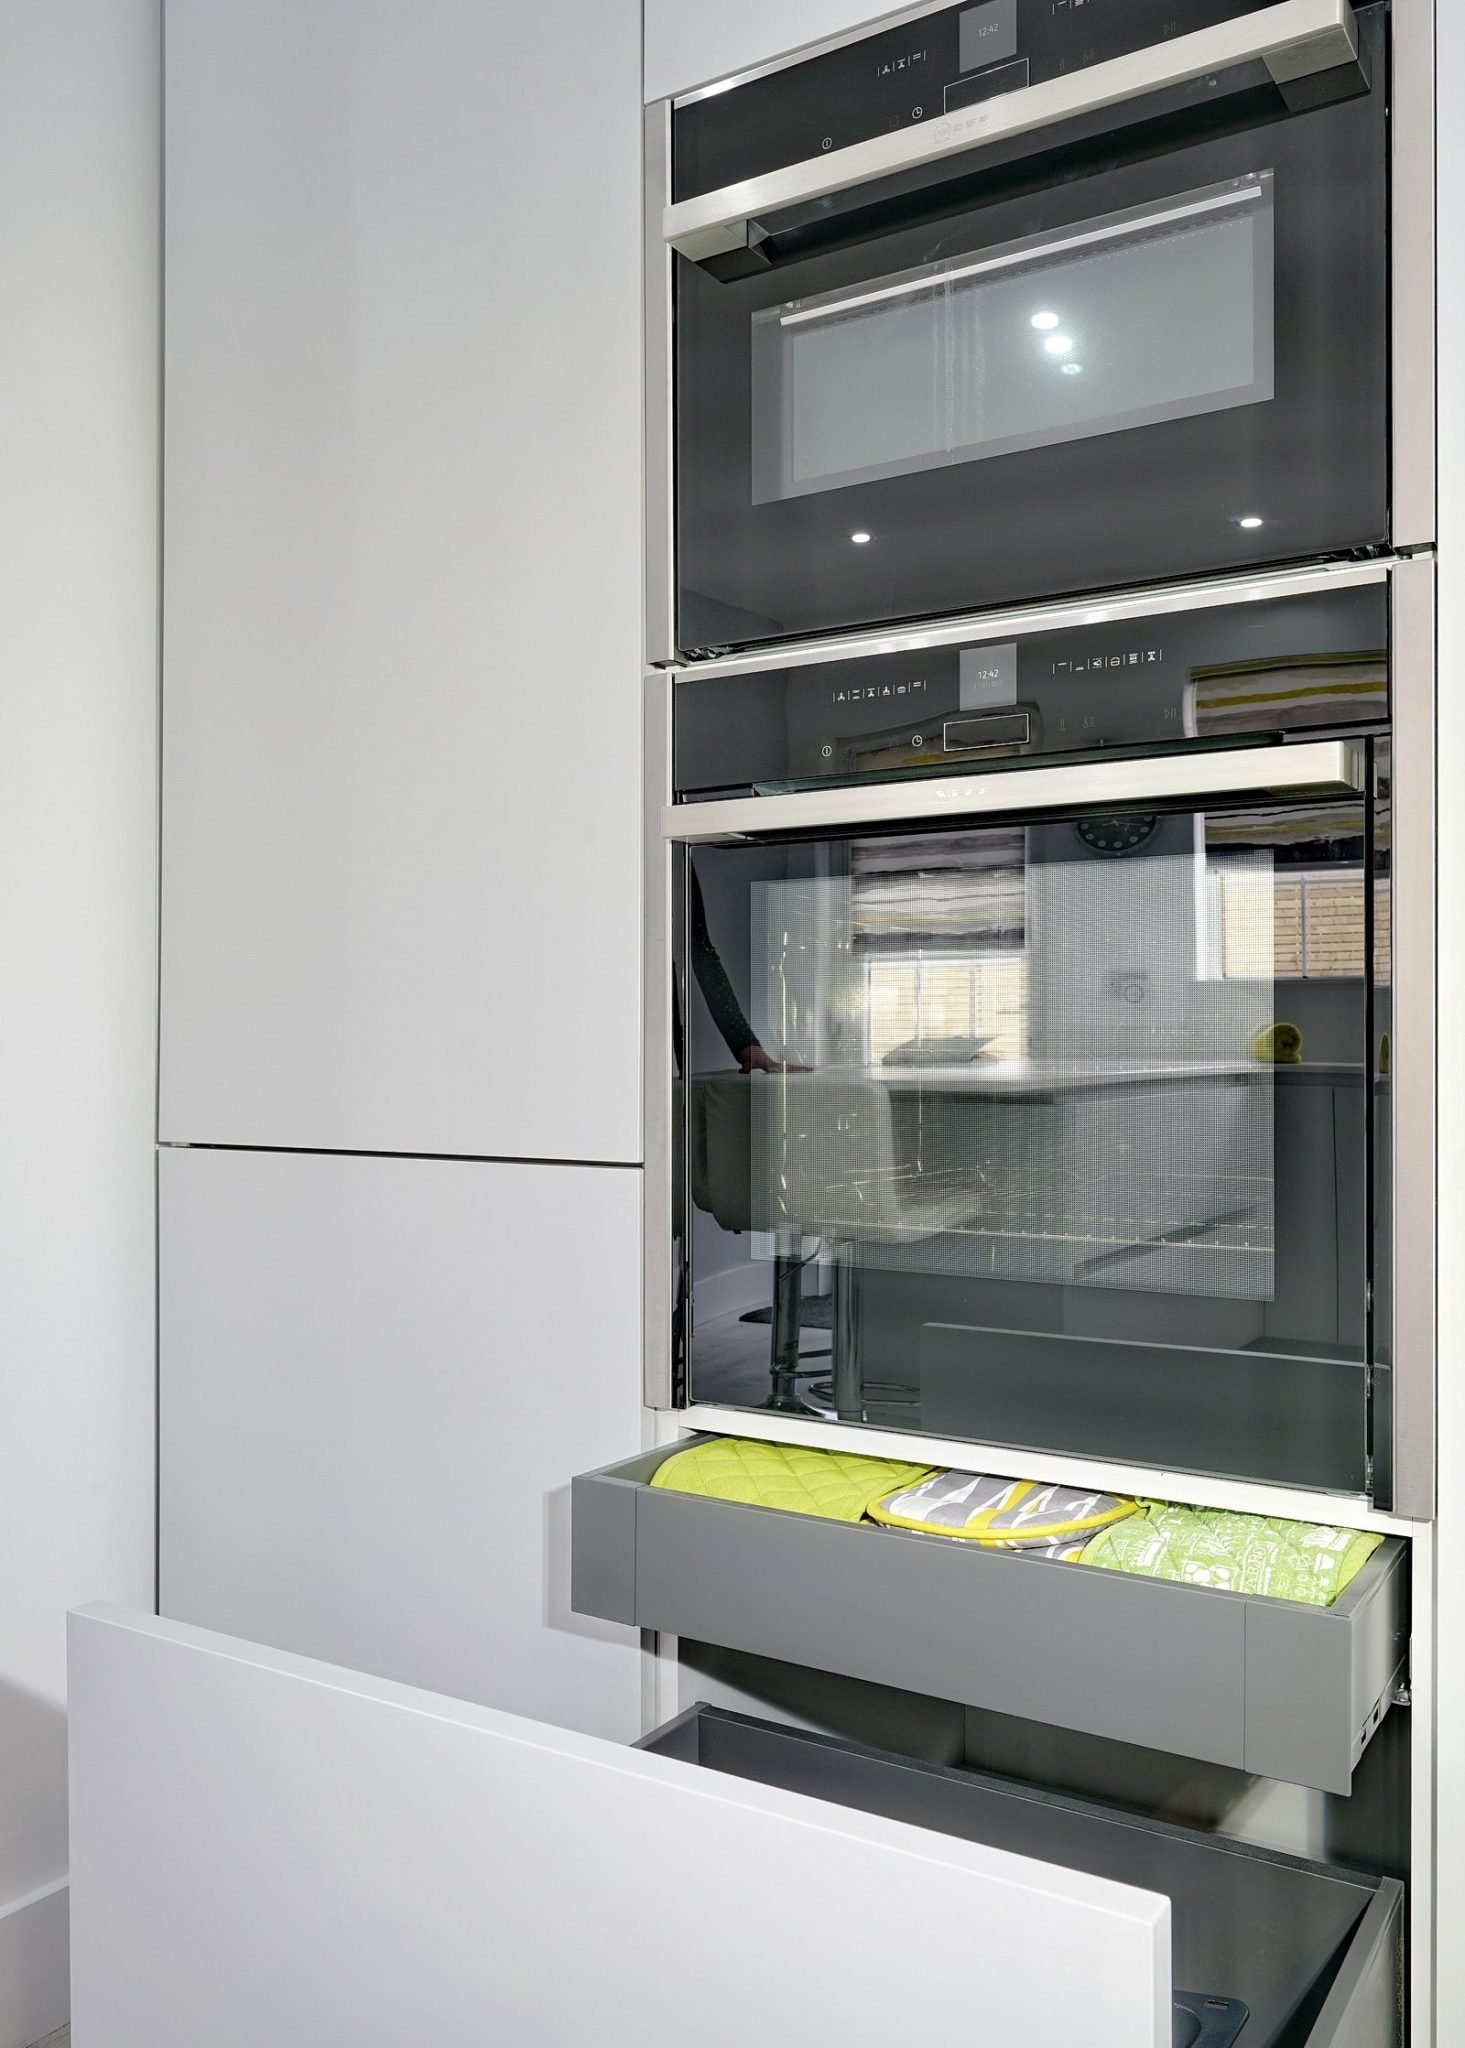 Neff Ovens in light grey kitchen